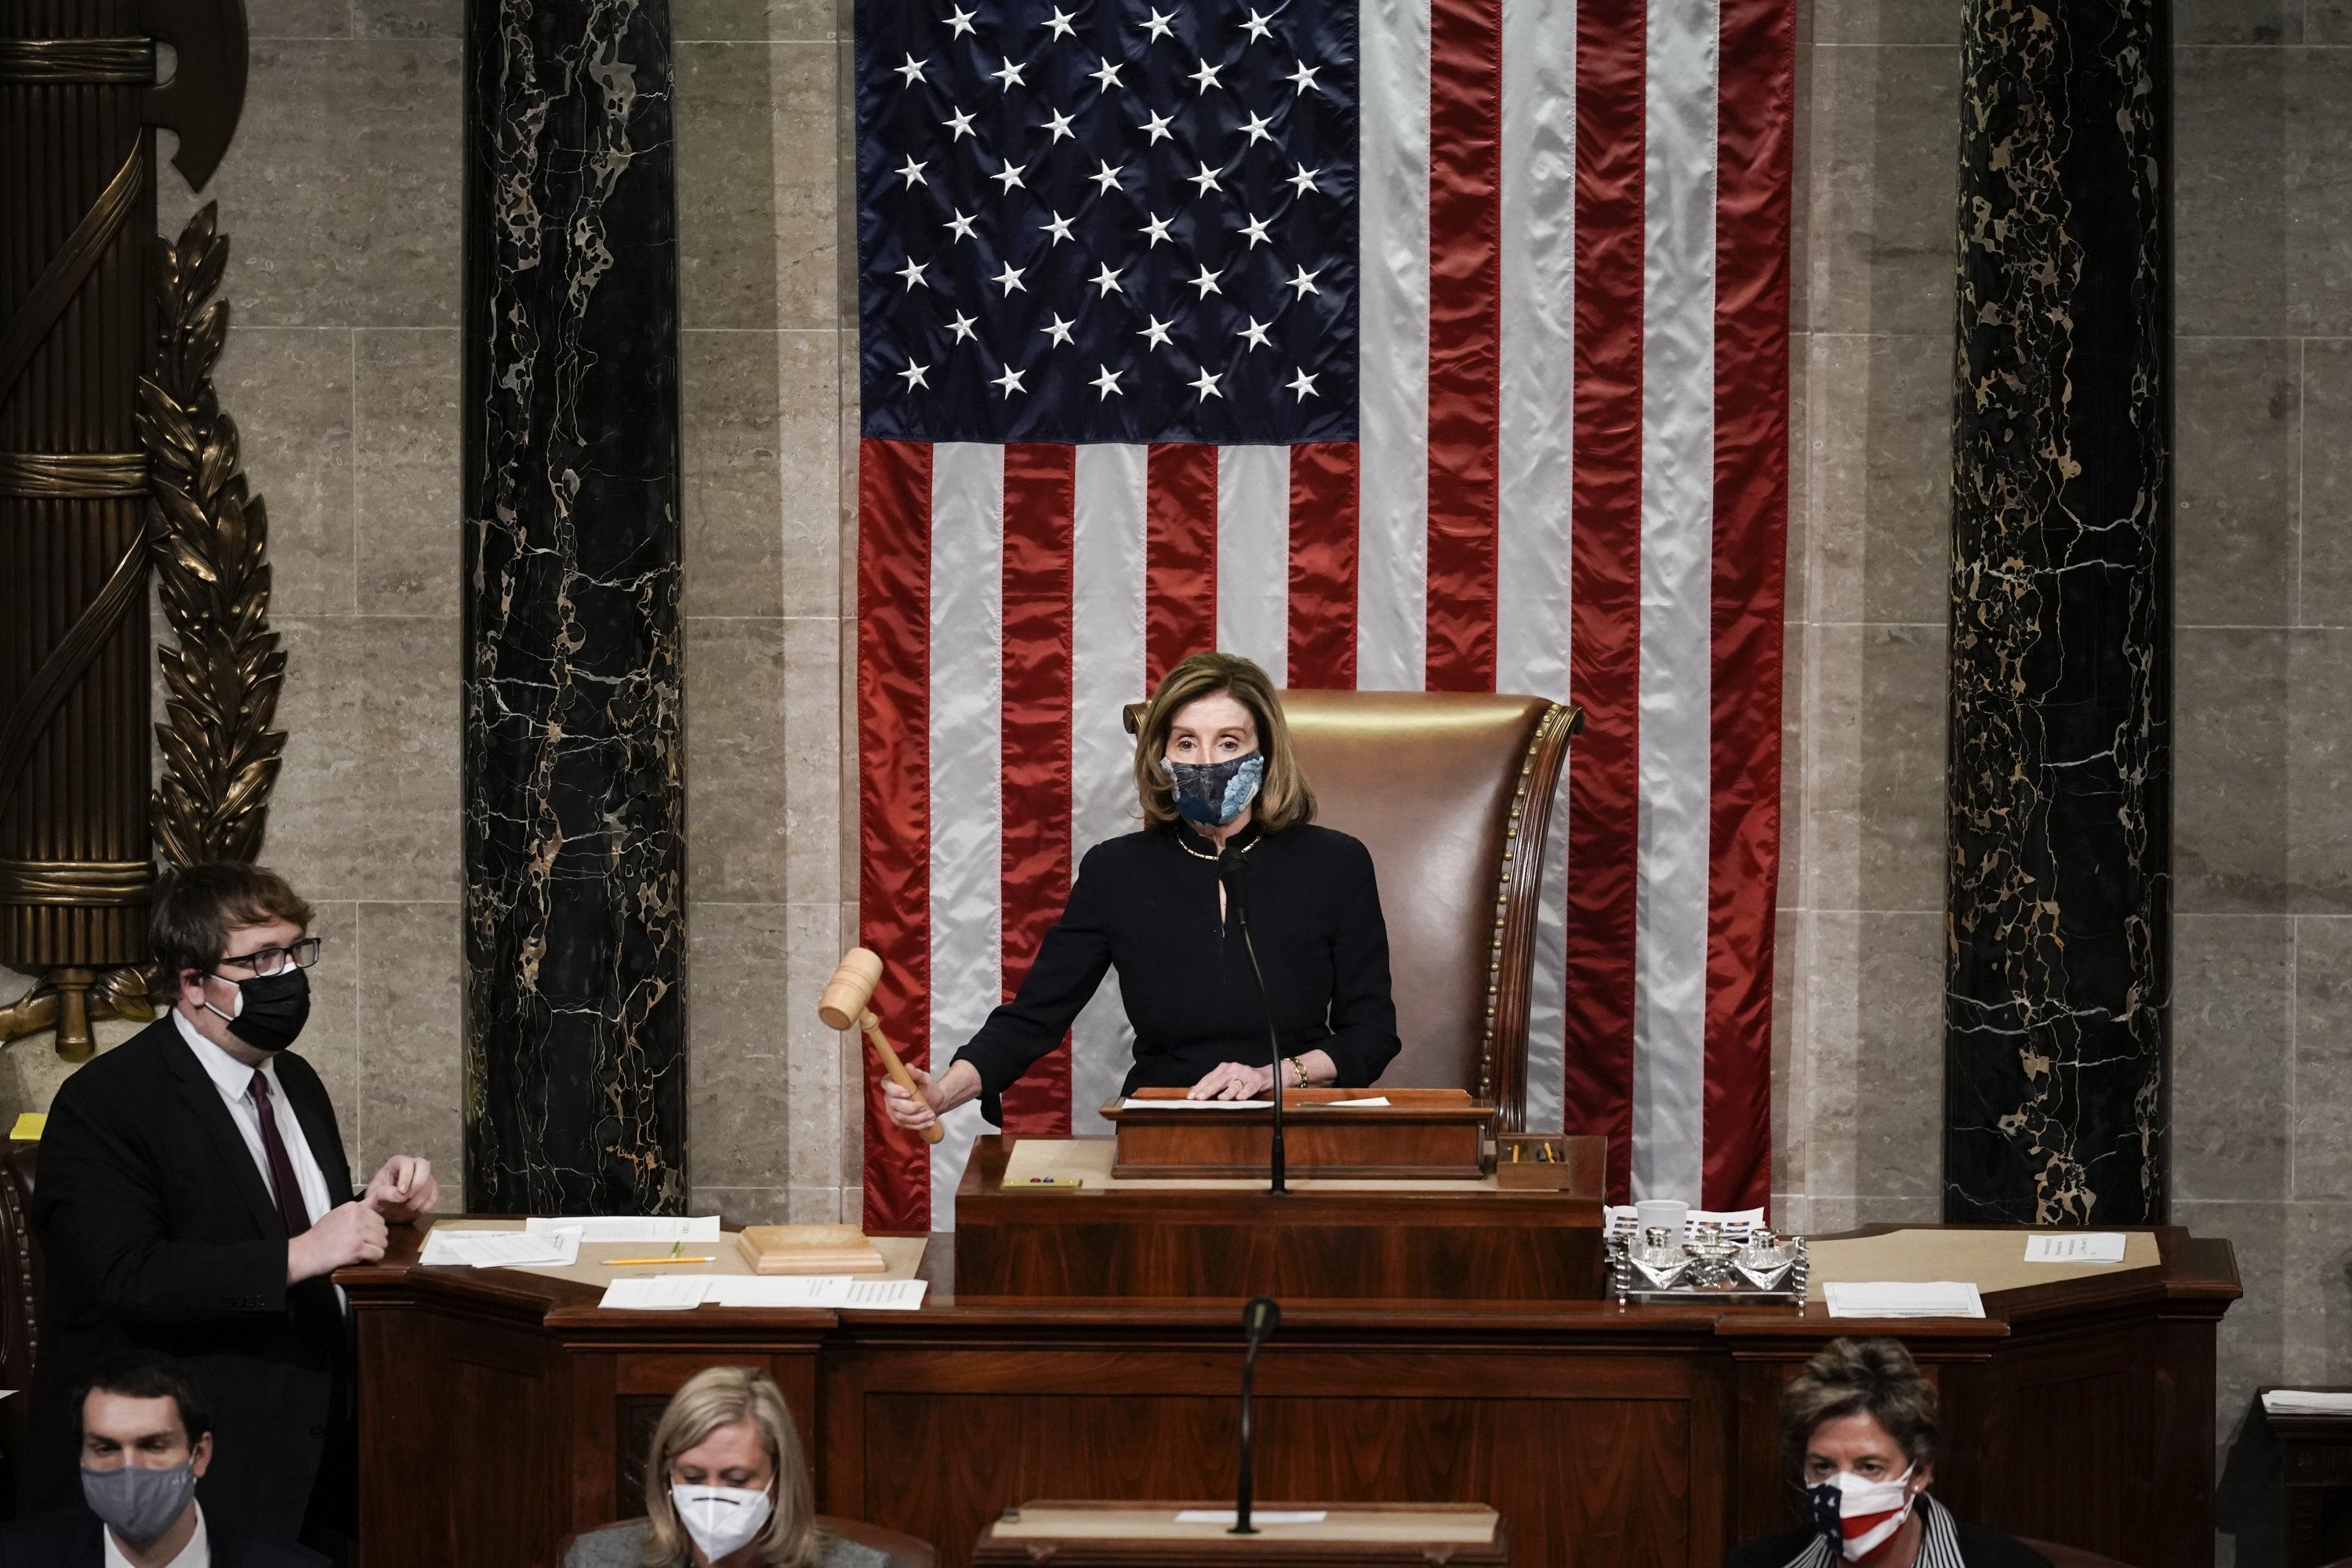 U.S. Speaker of the House Nancy Pelosi gavels in the final vote of the impeachment of U.S. President Donald Trump, for his role in inciting an angry storming into the U.S. Congress, Washington, D.C., Jan. 13, 2021. (AP Photo)